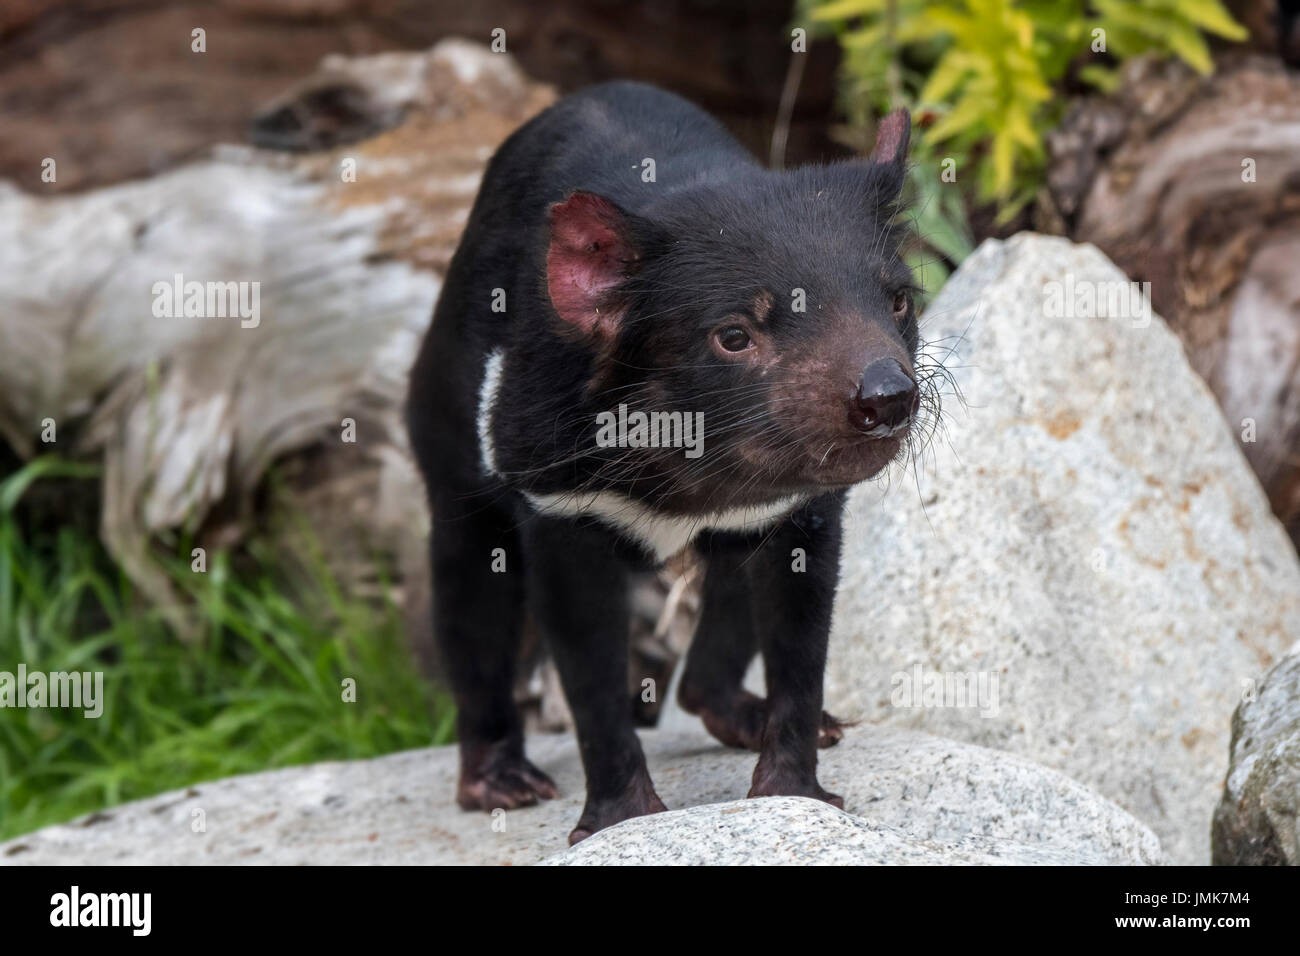 Tasmanian devil (Sarcophilus harrisii), largest carnivorous marsupial native to Australia Stock Photo